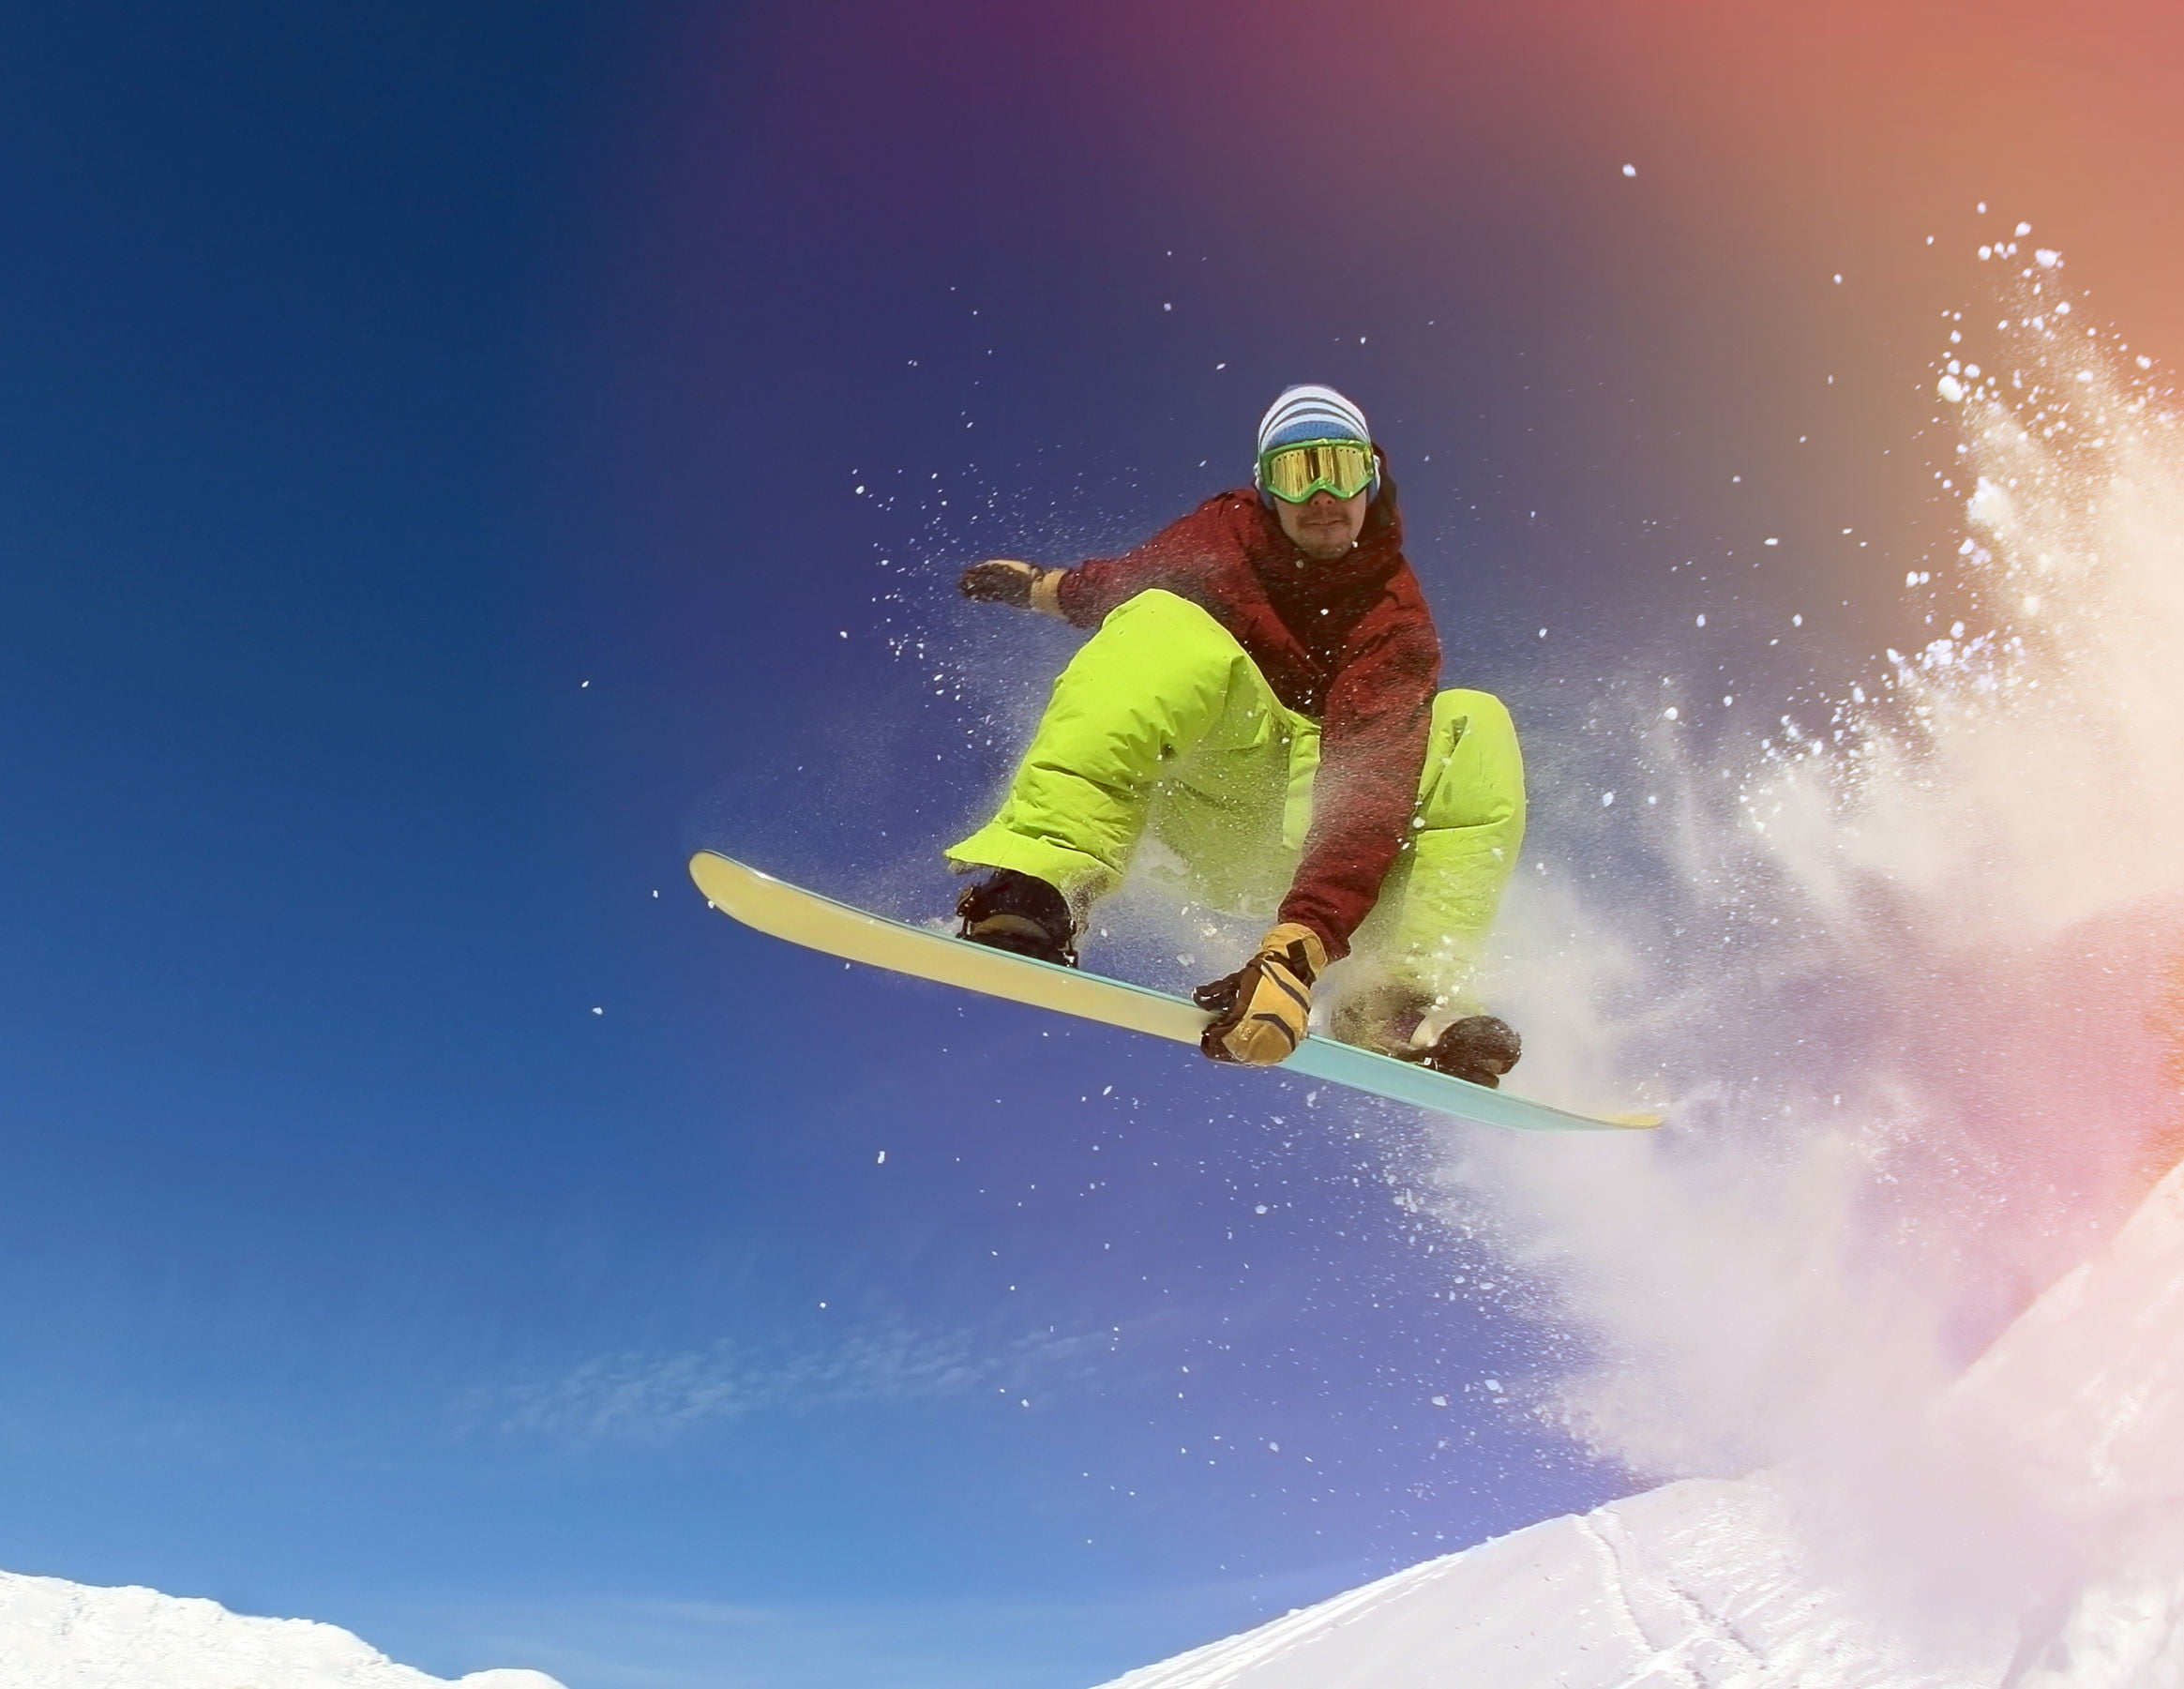 Need gift ideas? Here's what to get the skiers and snowboarders in your life